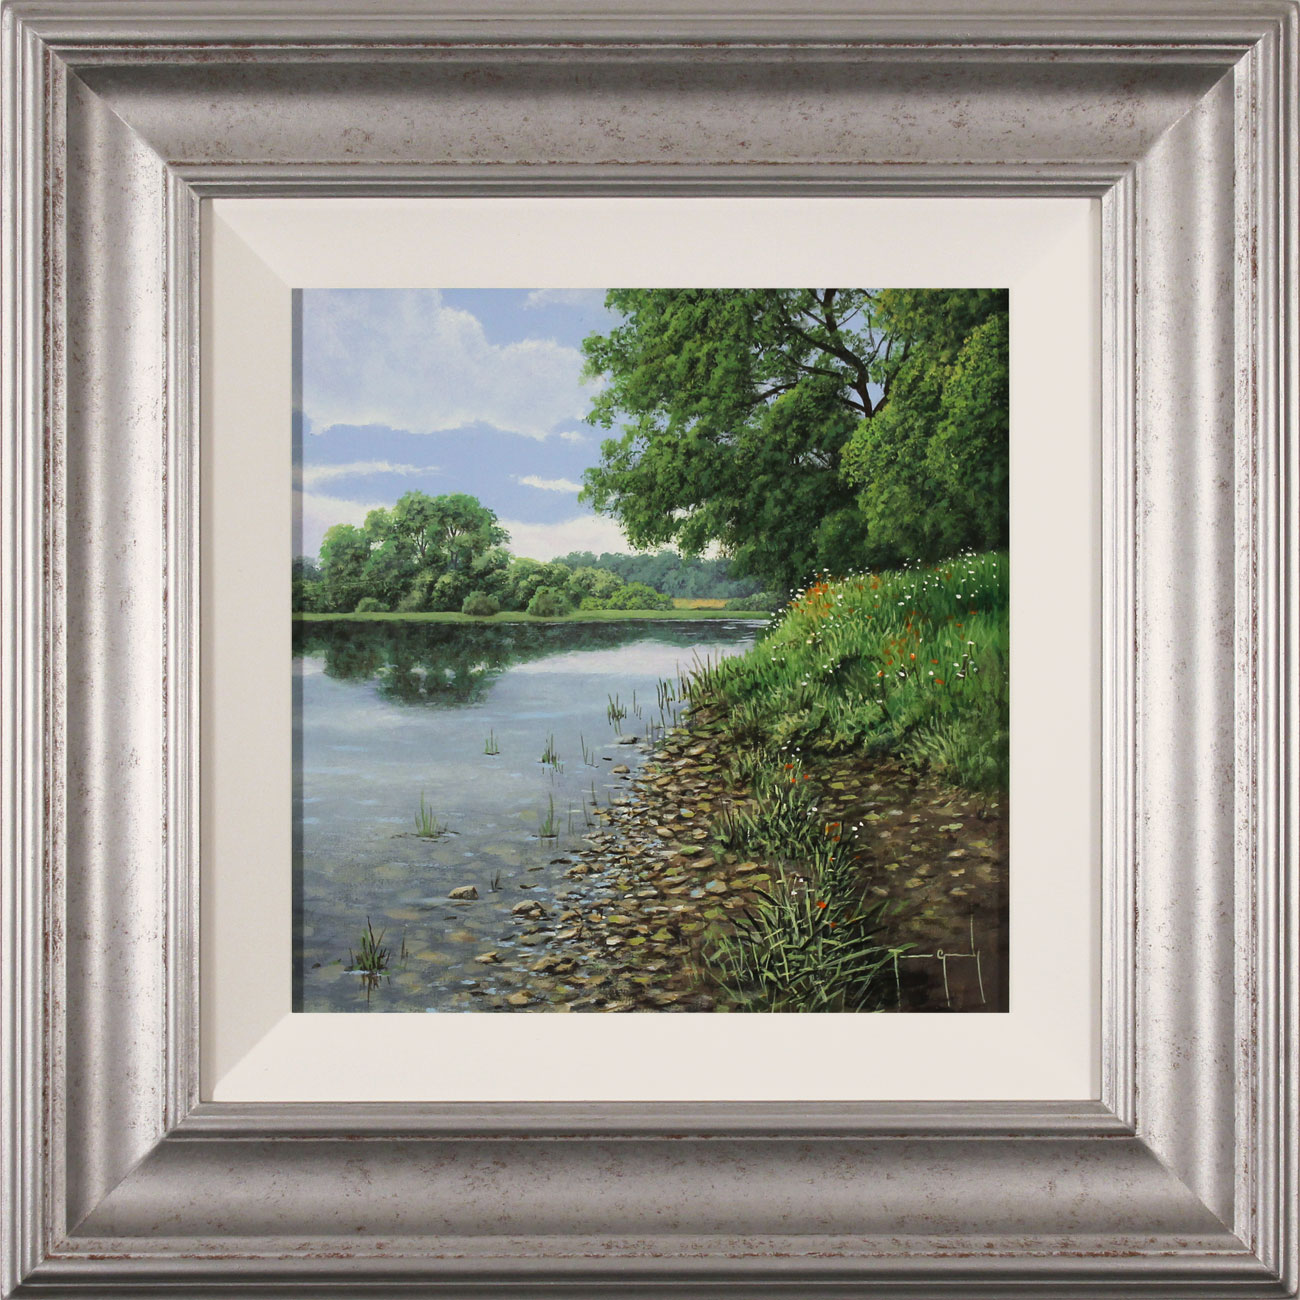 Terry Grundy, Original oil painting on panel, Calm of the River, click to enlarge